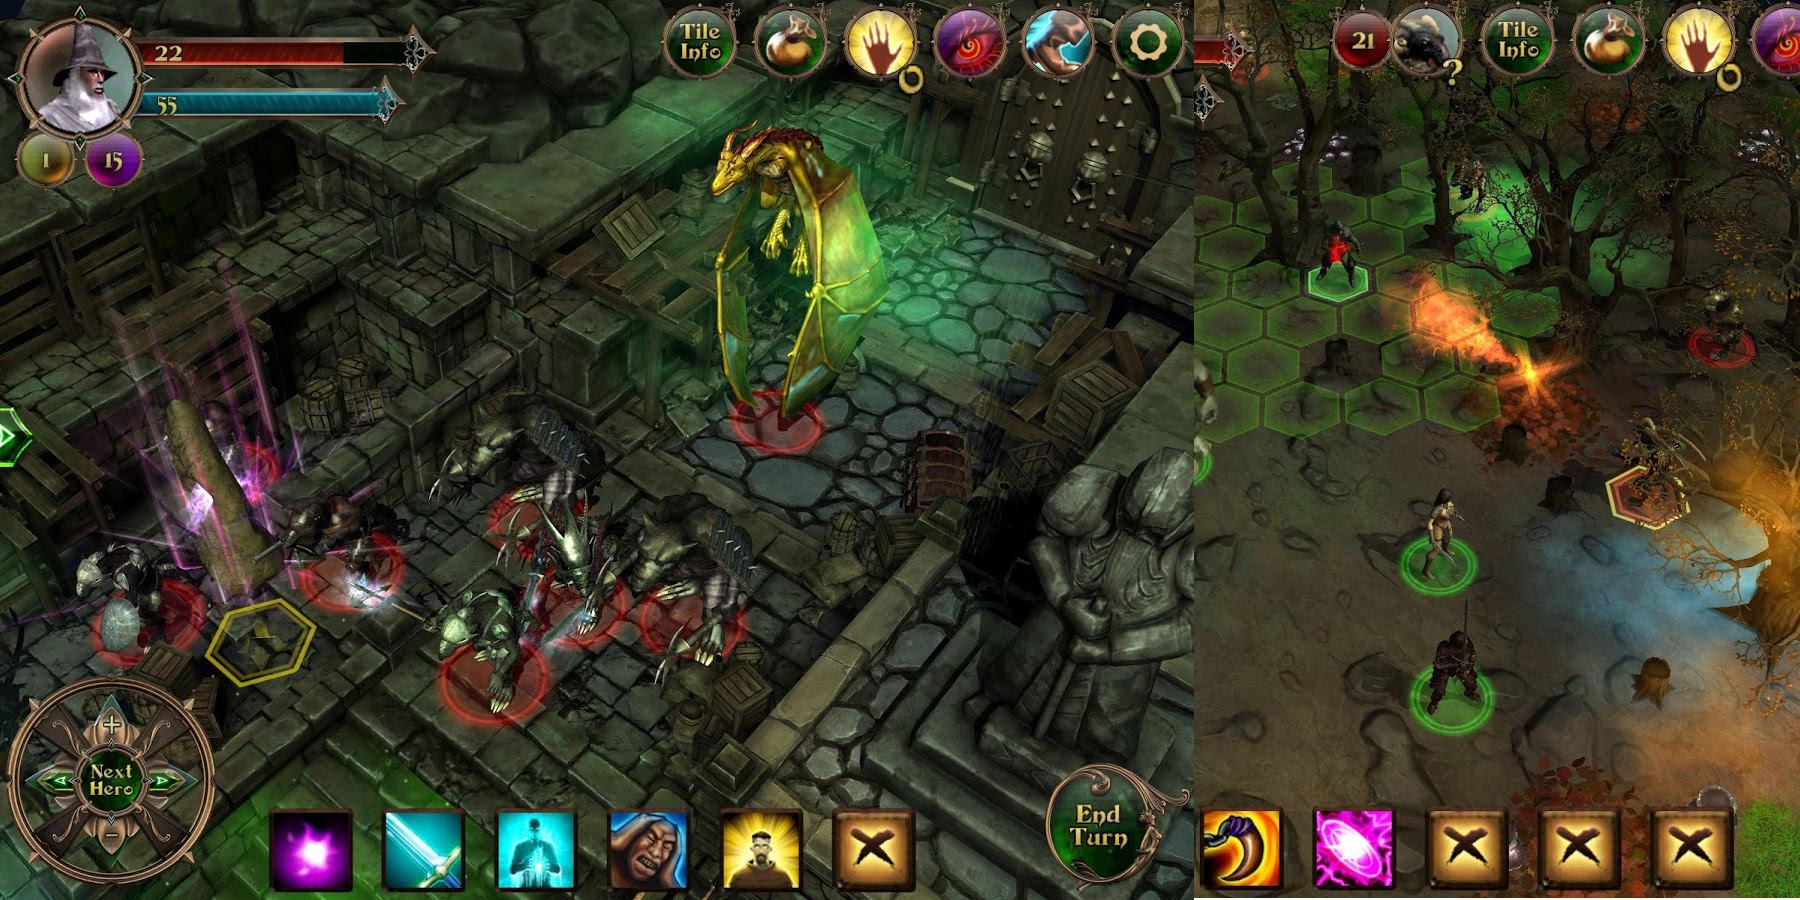 Lead a party of heroes into the underground city of Demon's Rise for iOS: $2 (Reg. $8)